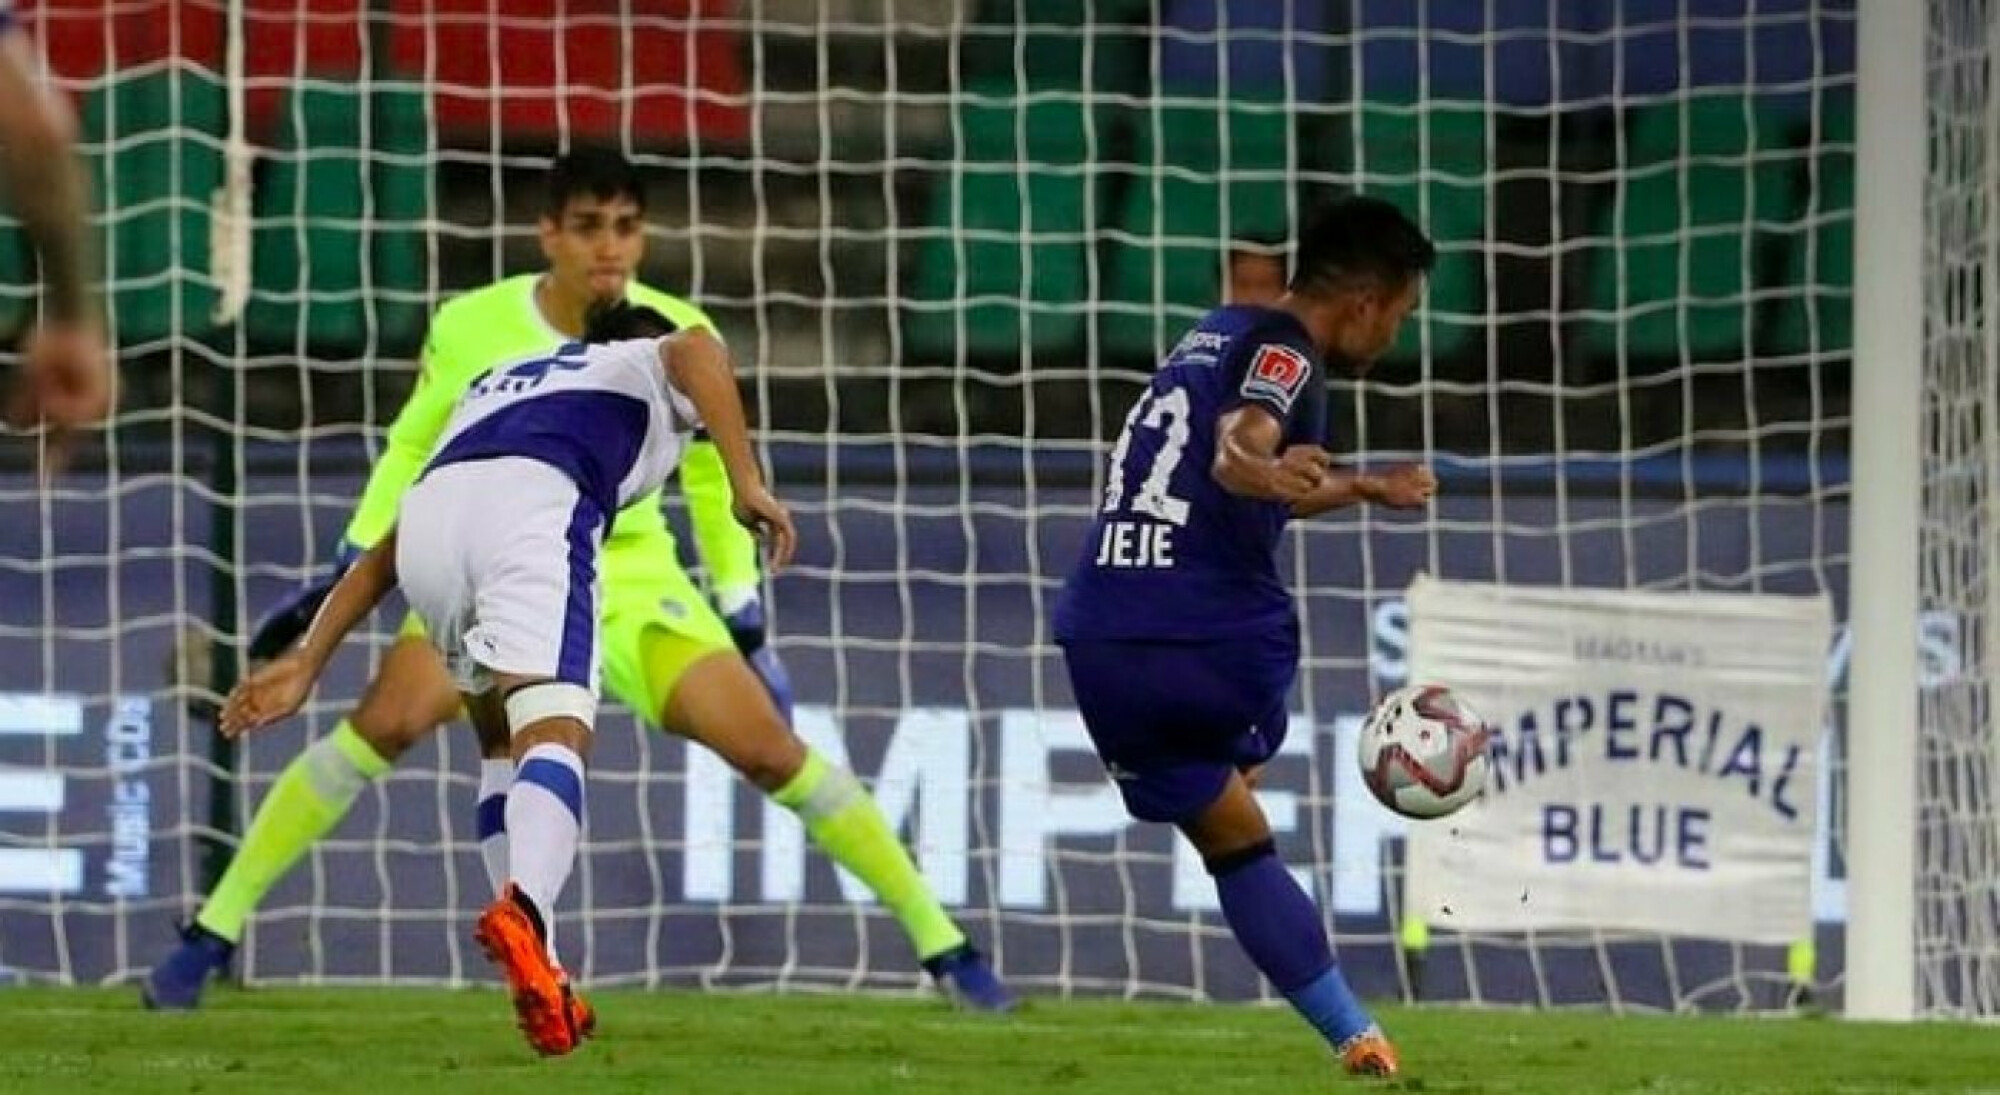 ISL 2018-19: Bottom-placed Chennaiyin stun Bengaluru